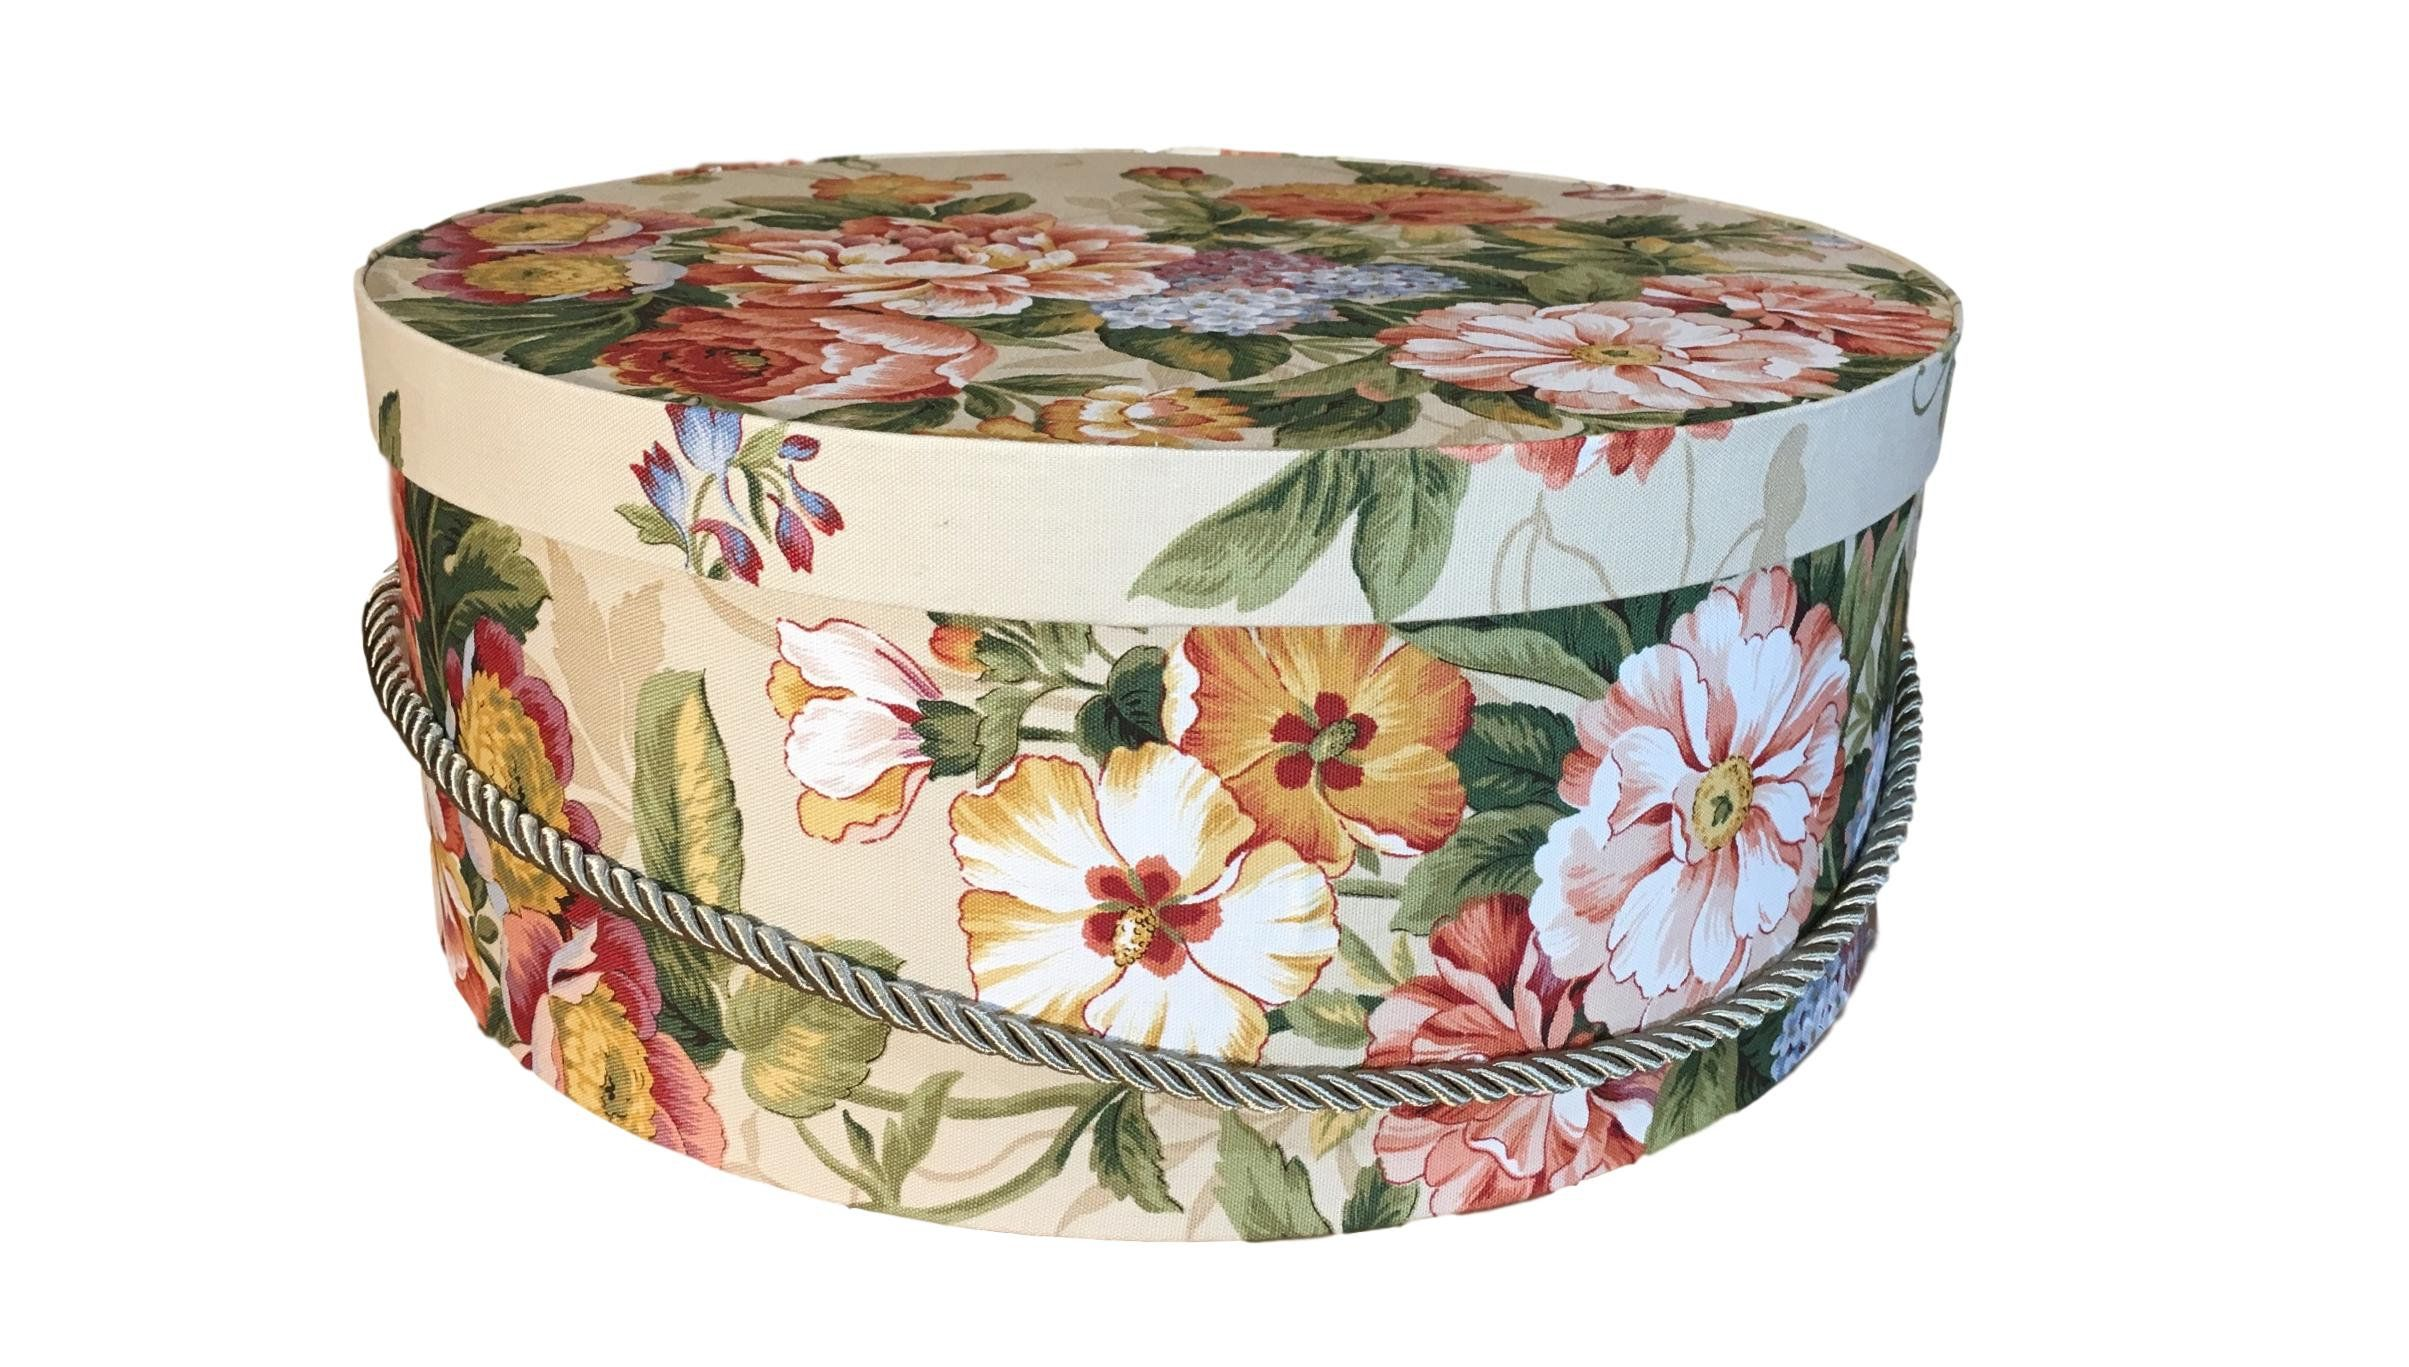 Extra Large Hat Box In Tan Floral Decorative Fabric Covered Hat Boxes Round Storage Box Keepsake Boxes With Lid Nesting Hat Box Luxury Hats Fabric Decor